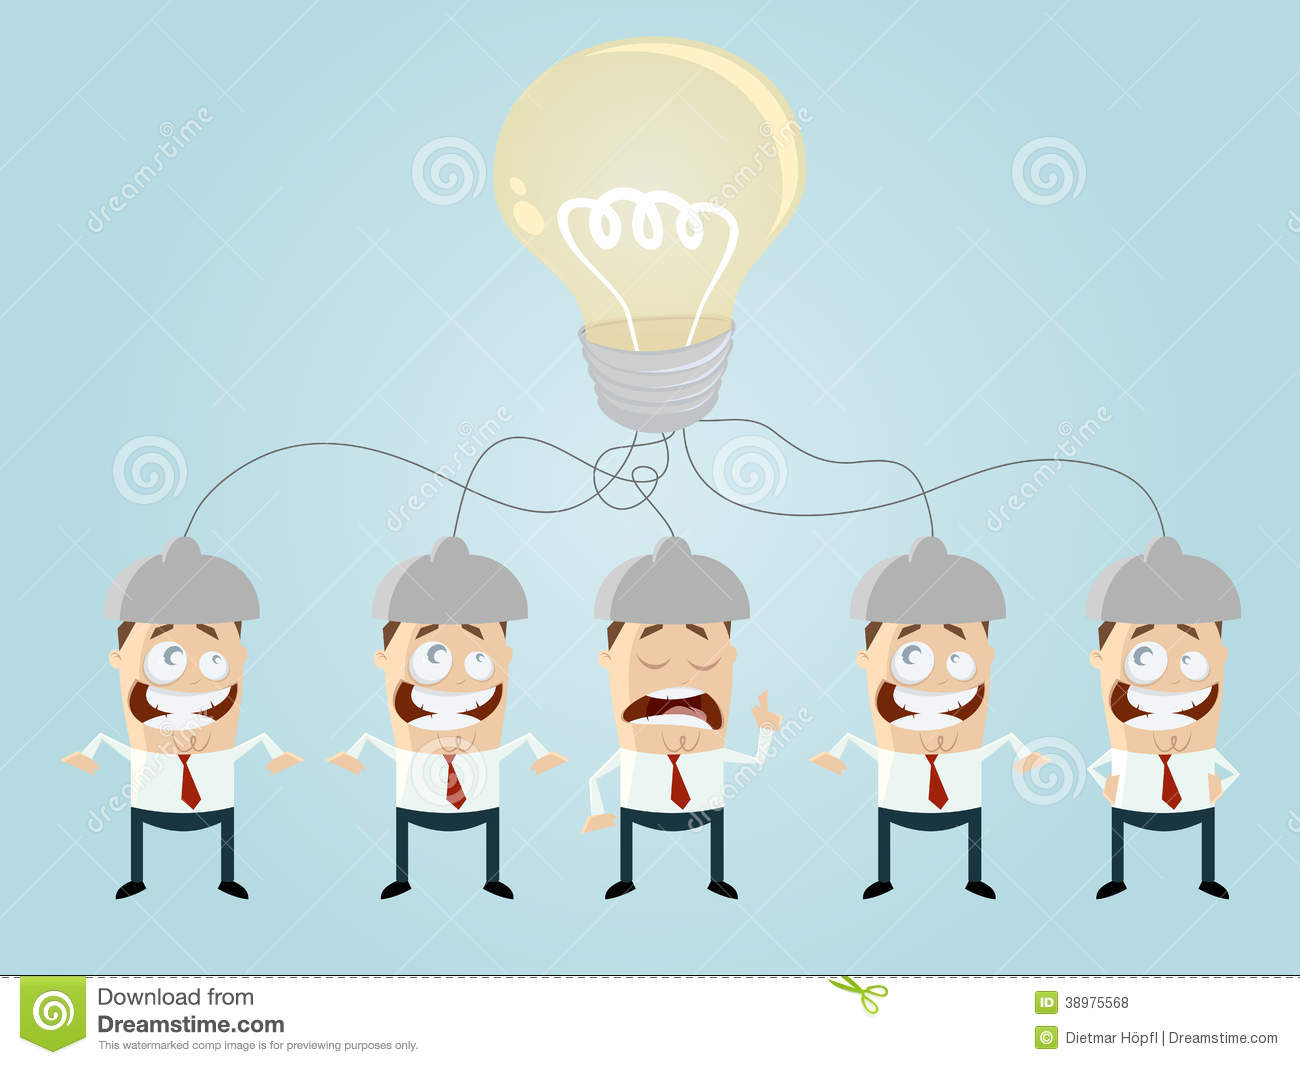 Cartoon Team Is Brainstorming Stock Vector - Image: 38975568